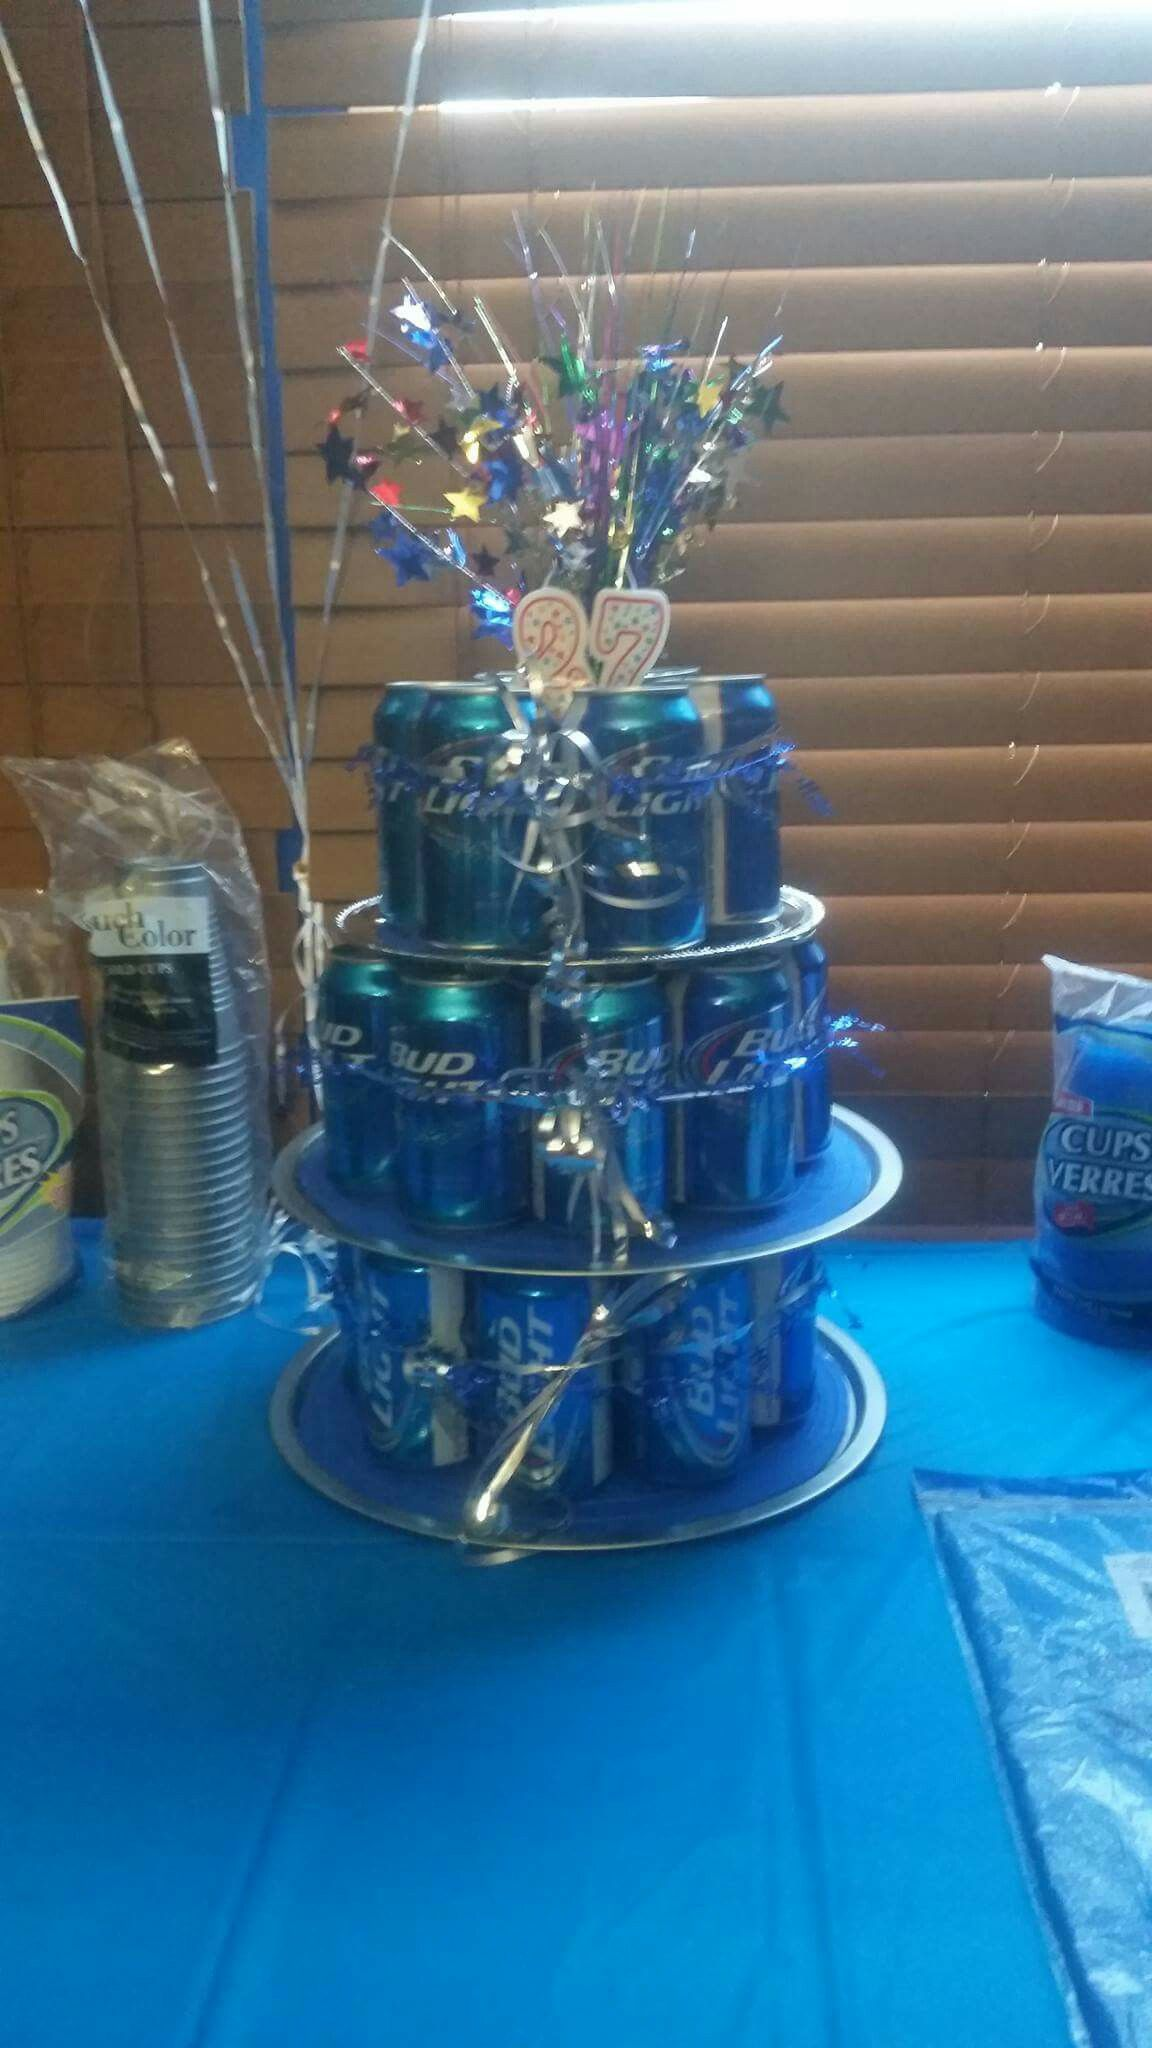 Budweiser 3 Tier Display Ready To Drink Made By My Son In Law Mother Connie Robinson